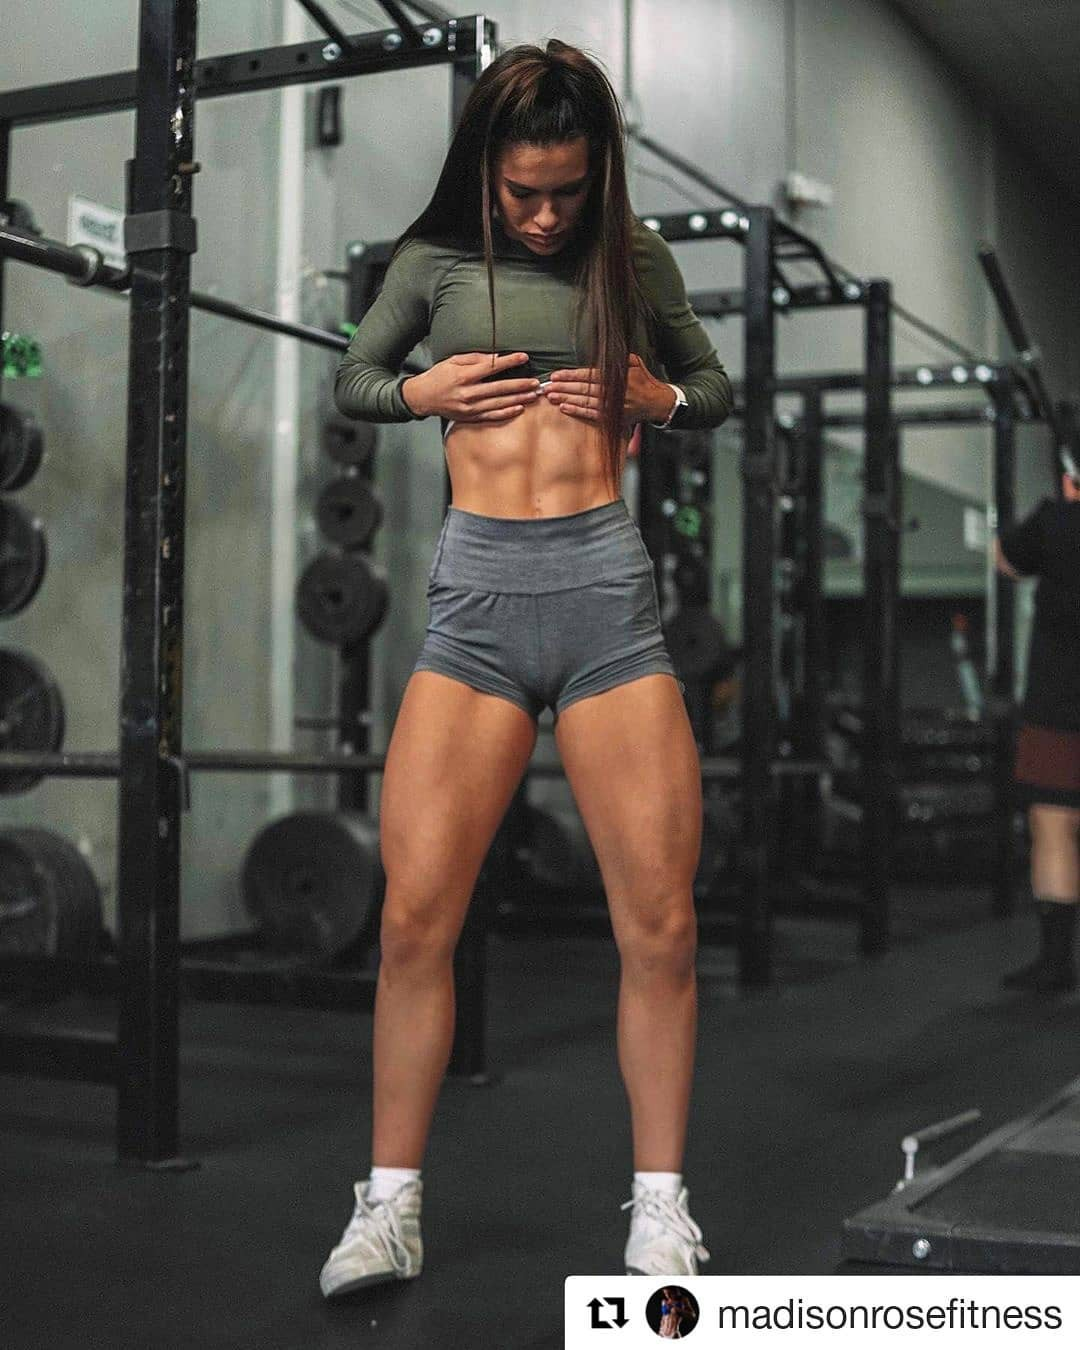 Girls with Abs female thighs, hot legs picture, muscle pic